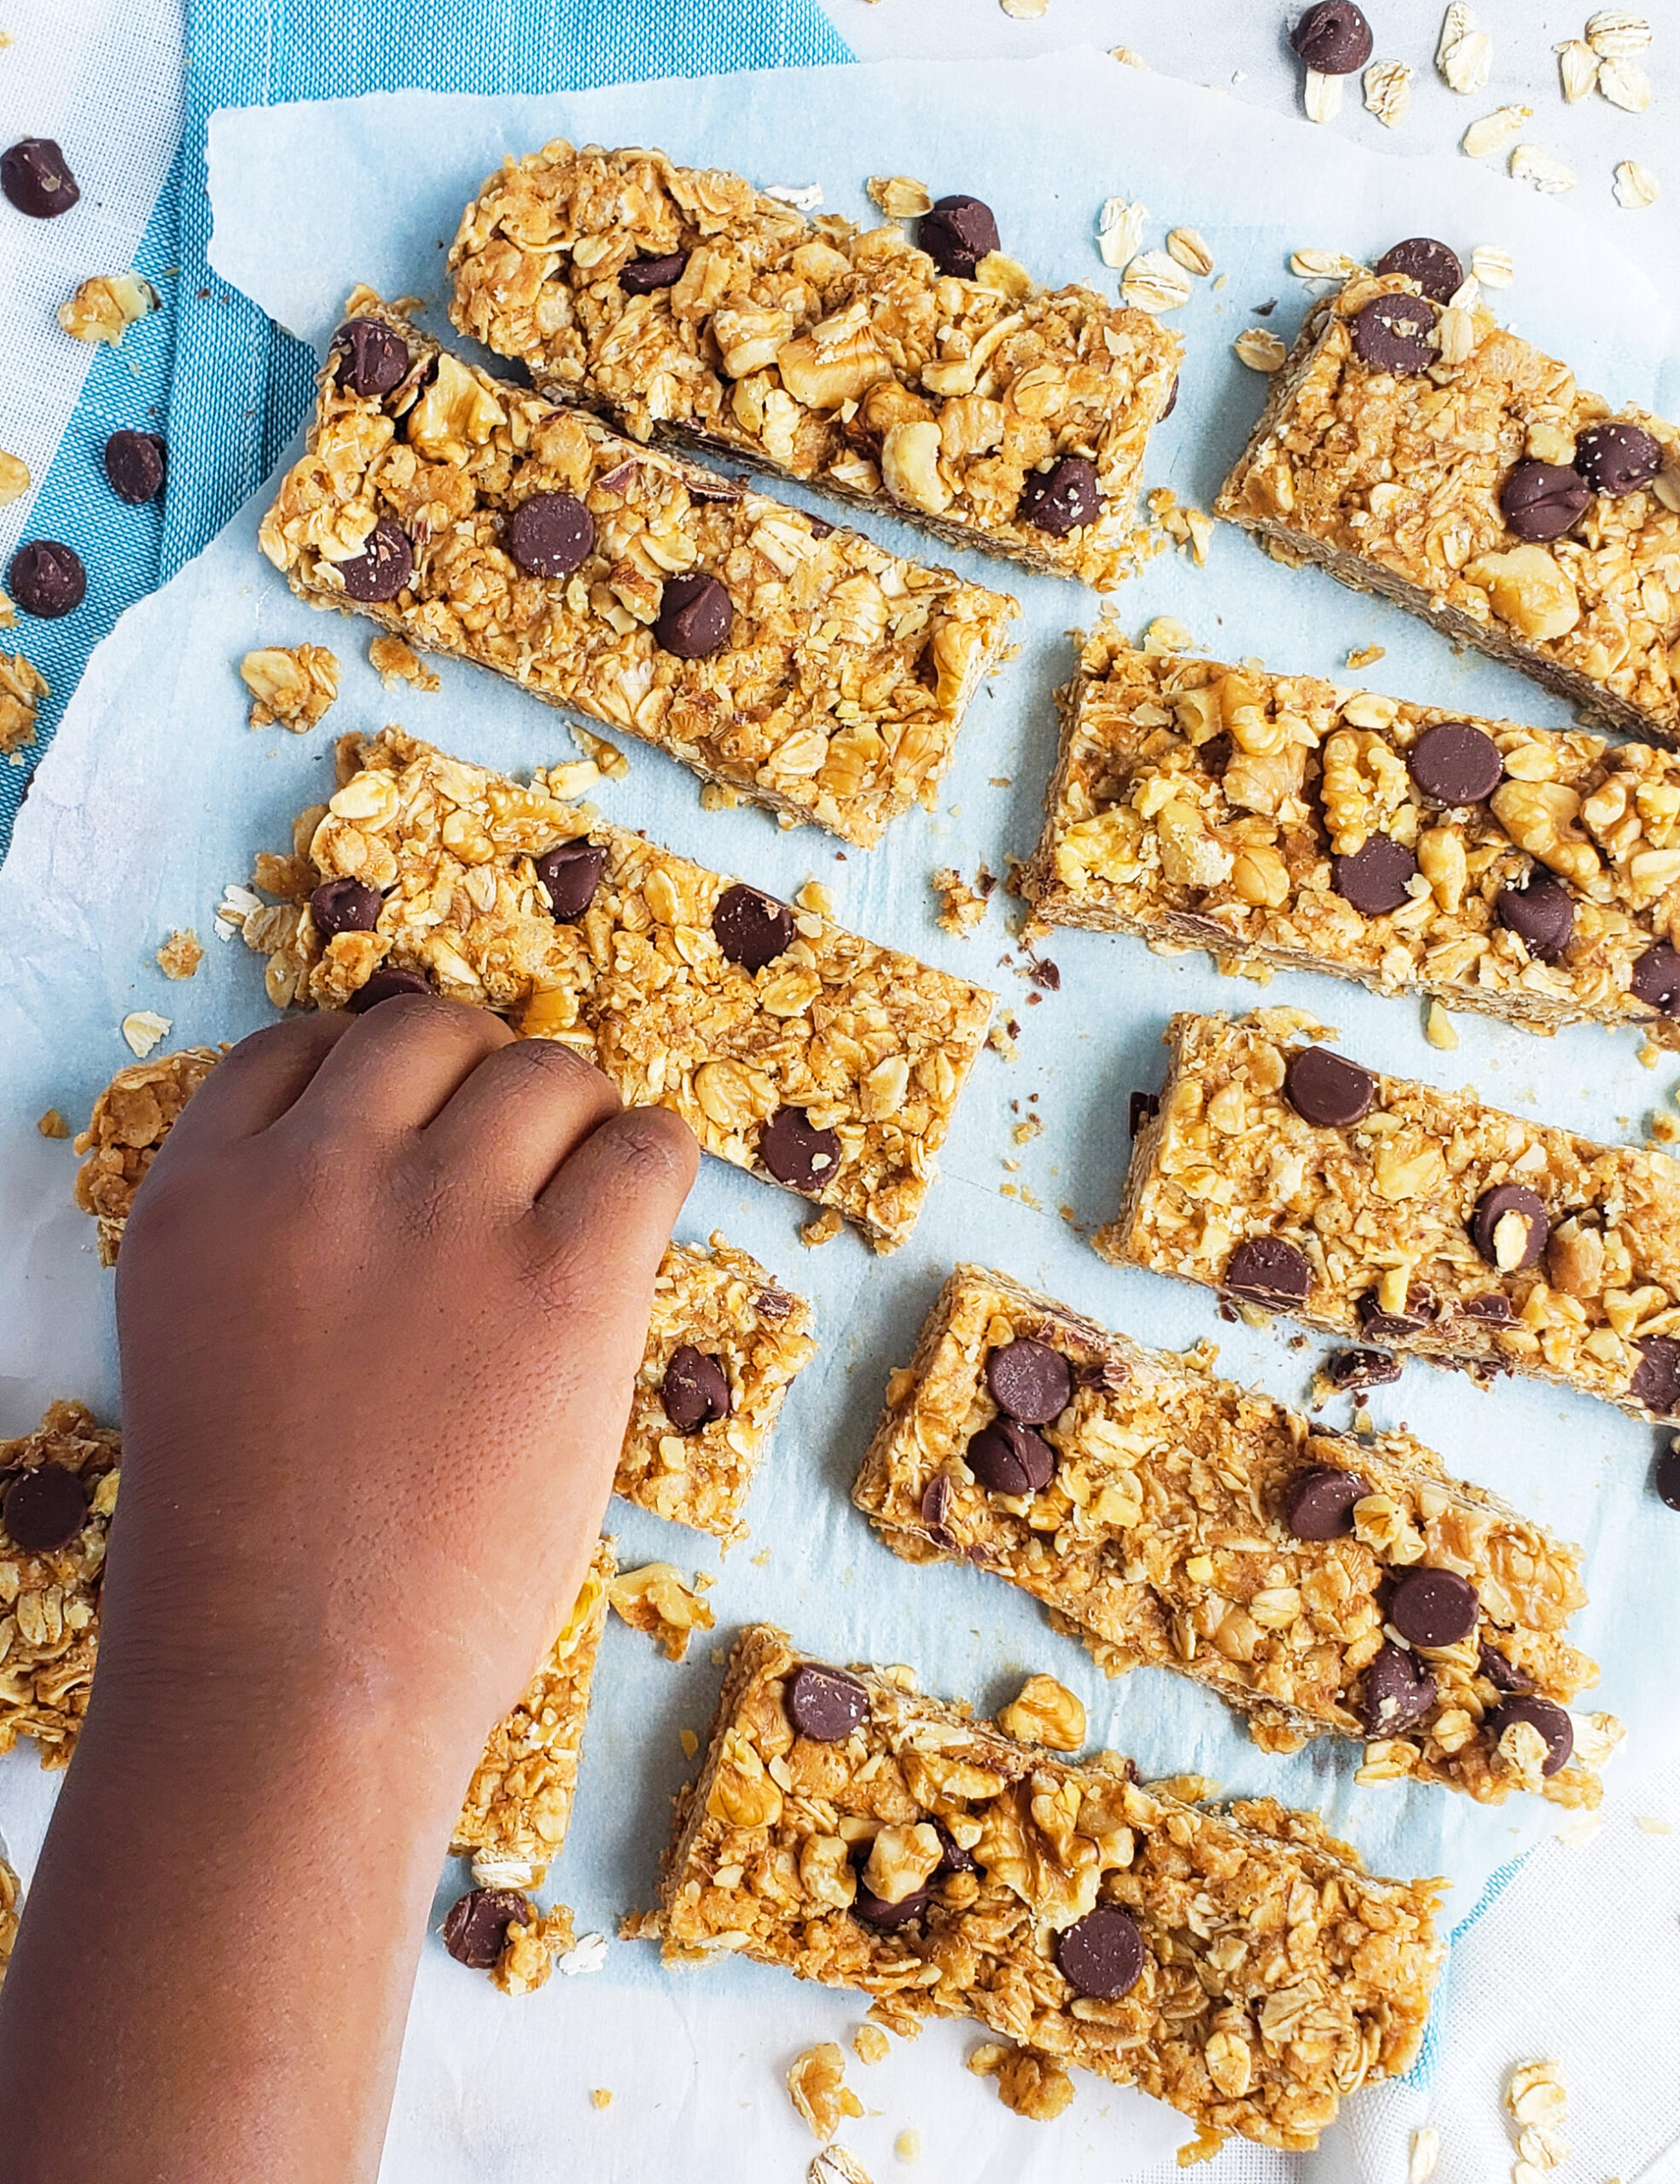 Chocolate, peanut butter, oats, Rice Krispies and honey are some of the great ingredients that make these delicious Chewy Nutty Crispy Rice Granola Bars. They are the perfect after school snack. Littleeatsandthings.com